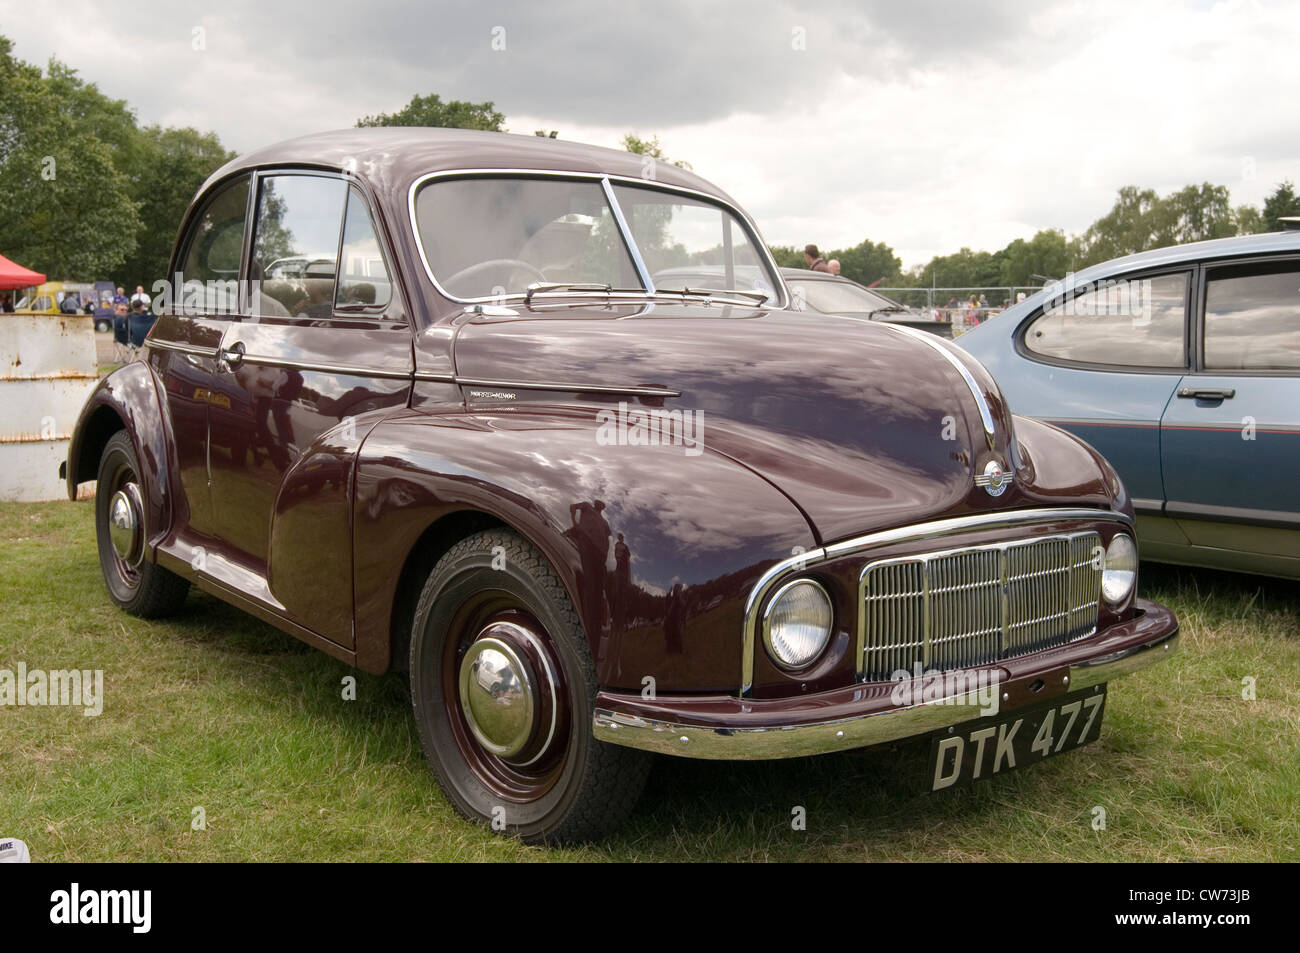 morris minor series 1 early old car cars classic show split screen ...